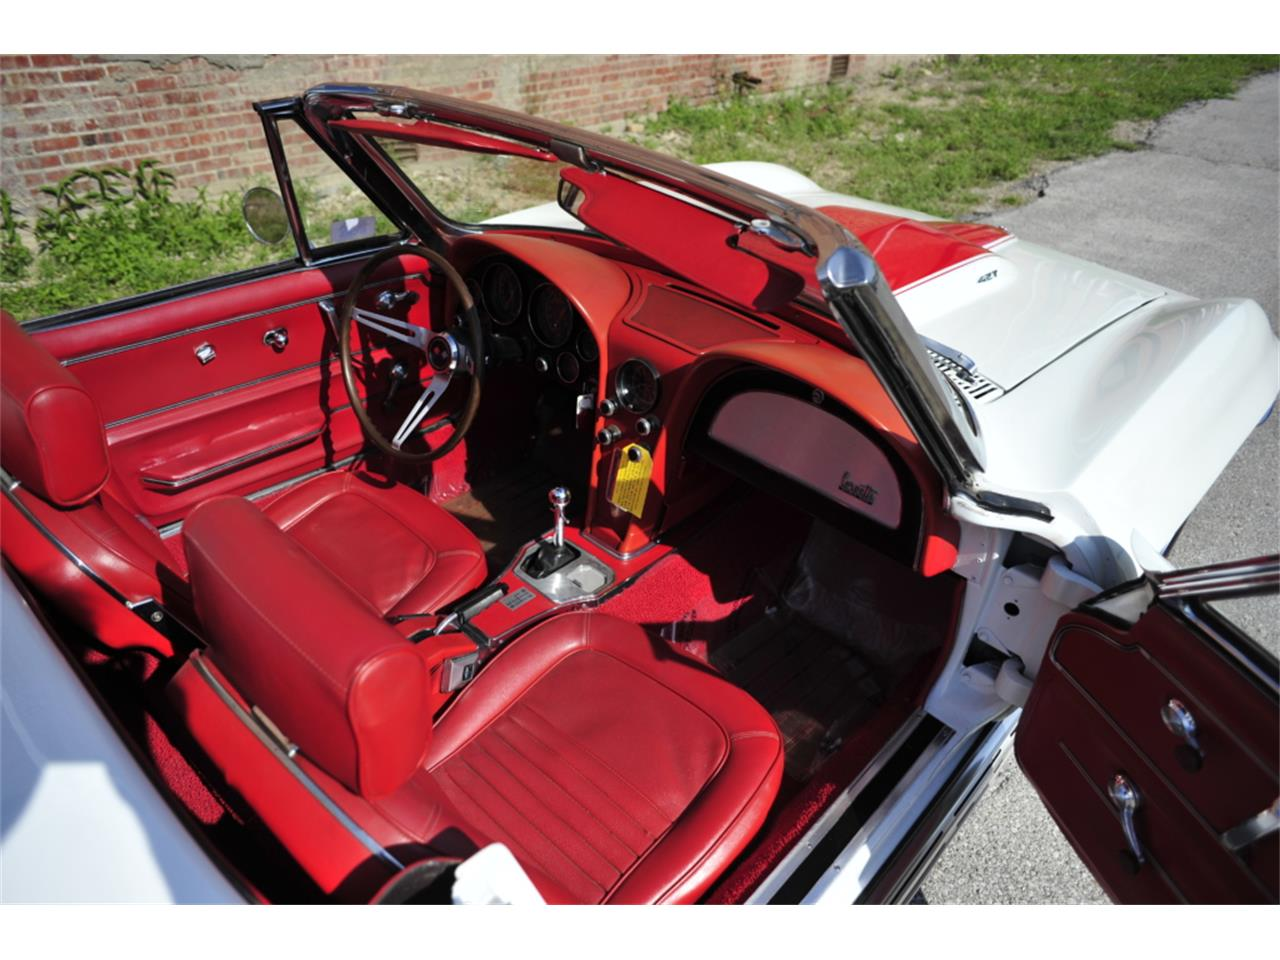 Large Picture of '67 Chevrolet Corvette located in N. Kansas City Missouri Offered by Vintage Vettes, LLC - PZ9R